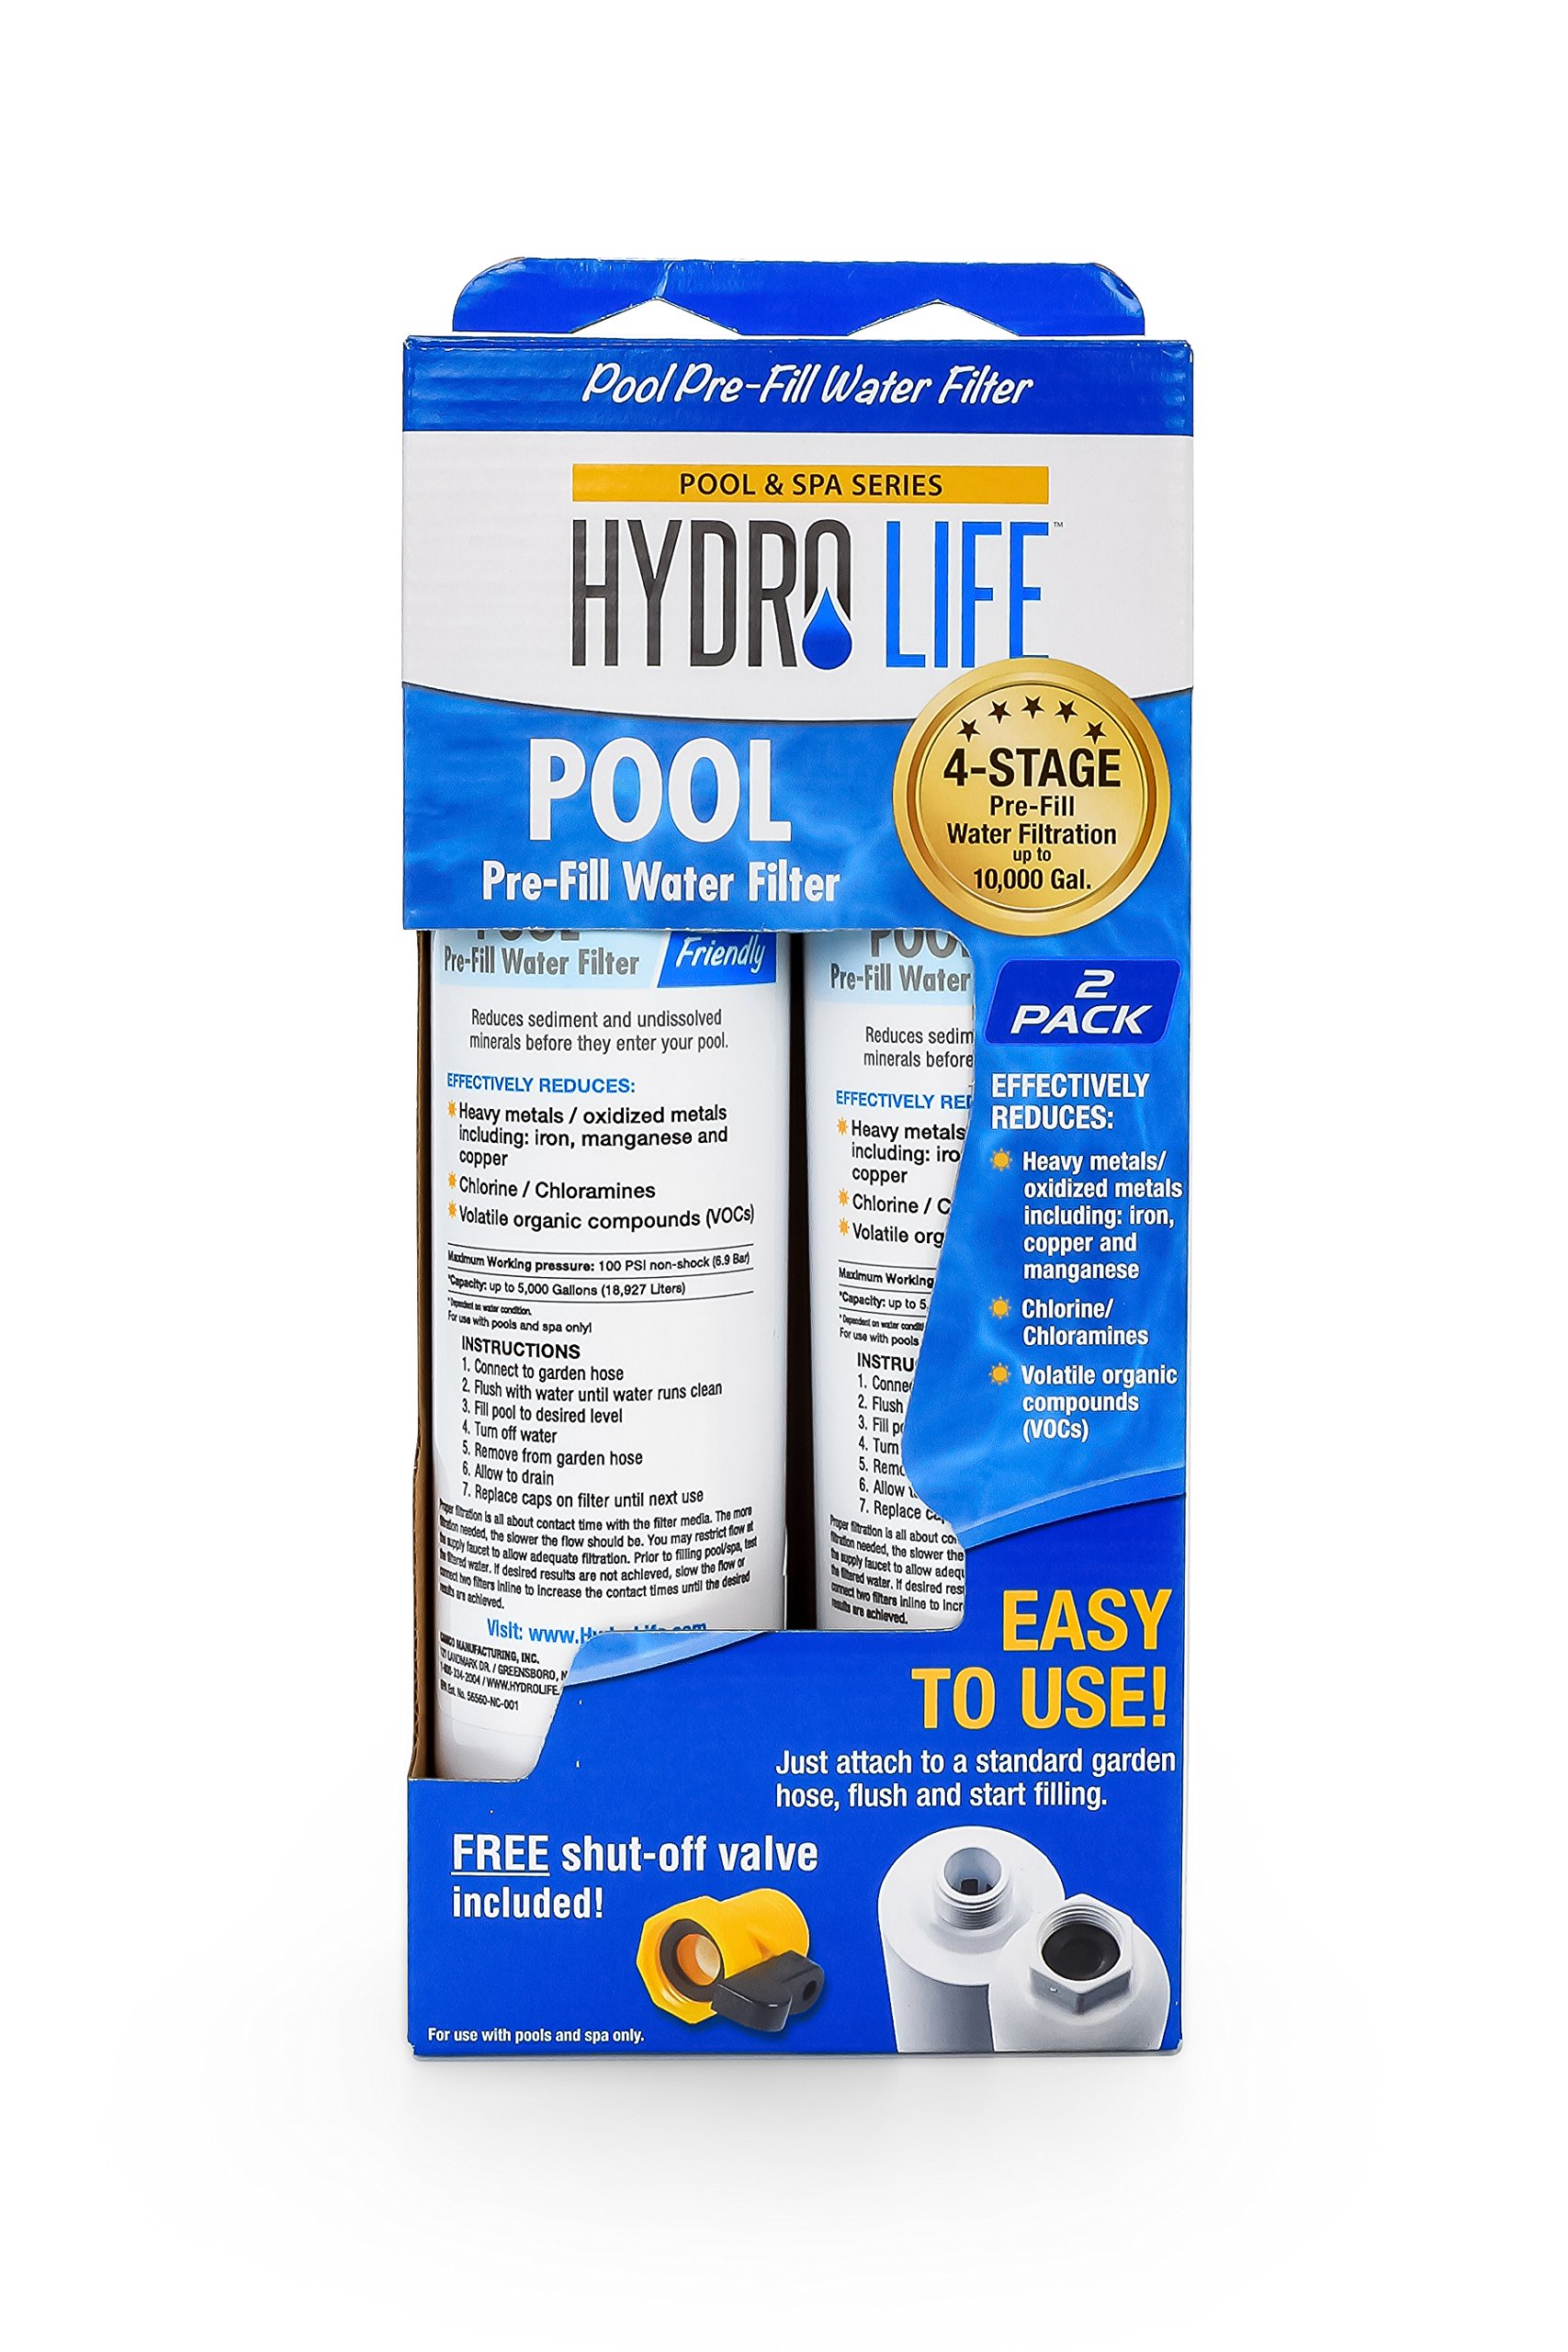 Hydro Life Pool Water Filter - Pack of 2 - Effectively Reduces Levels of Heavy Metals, Chlorine, Chloramines and Volatile Organic Compounds to Make Balancing Chemicals Easier, Model 52802 by Hydro Life (Image #3)